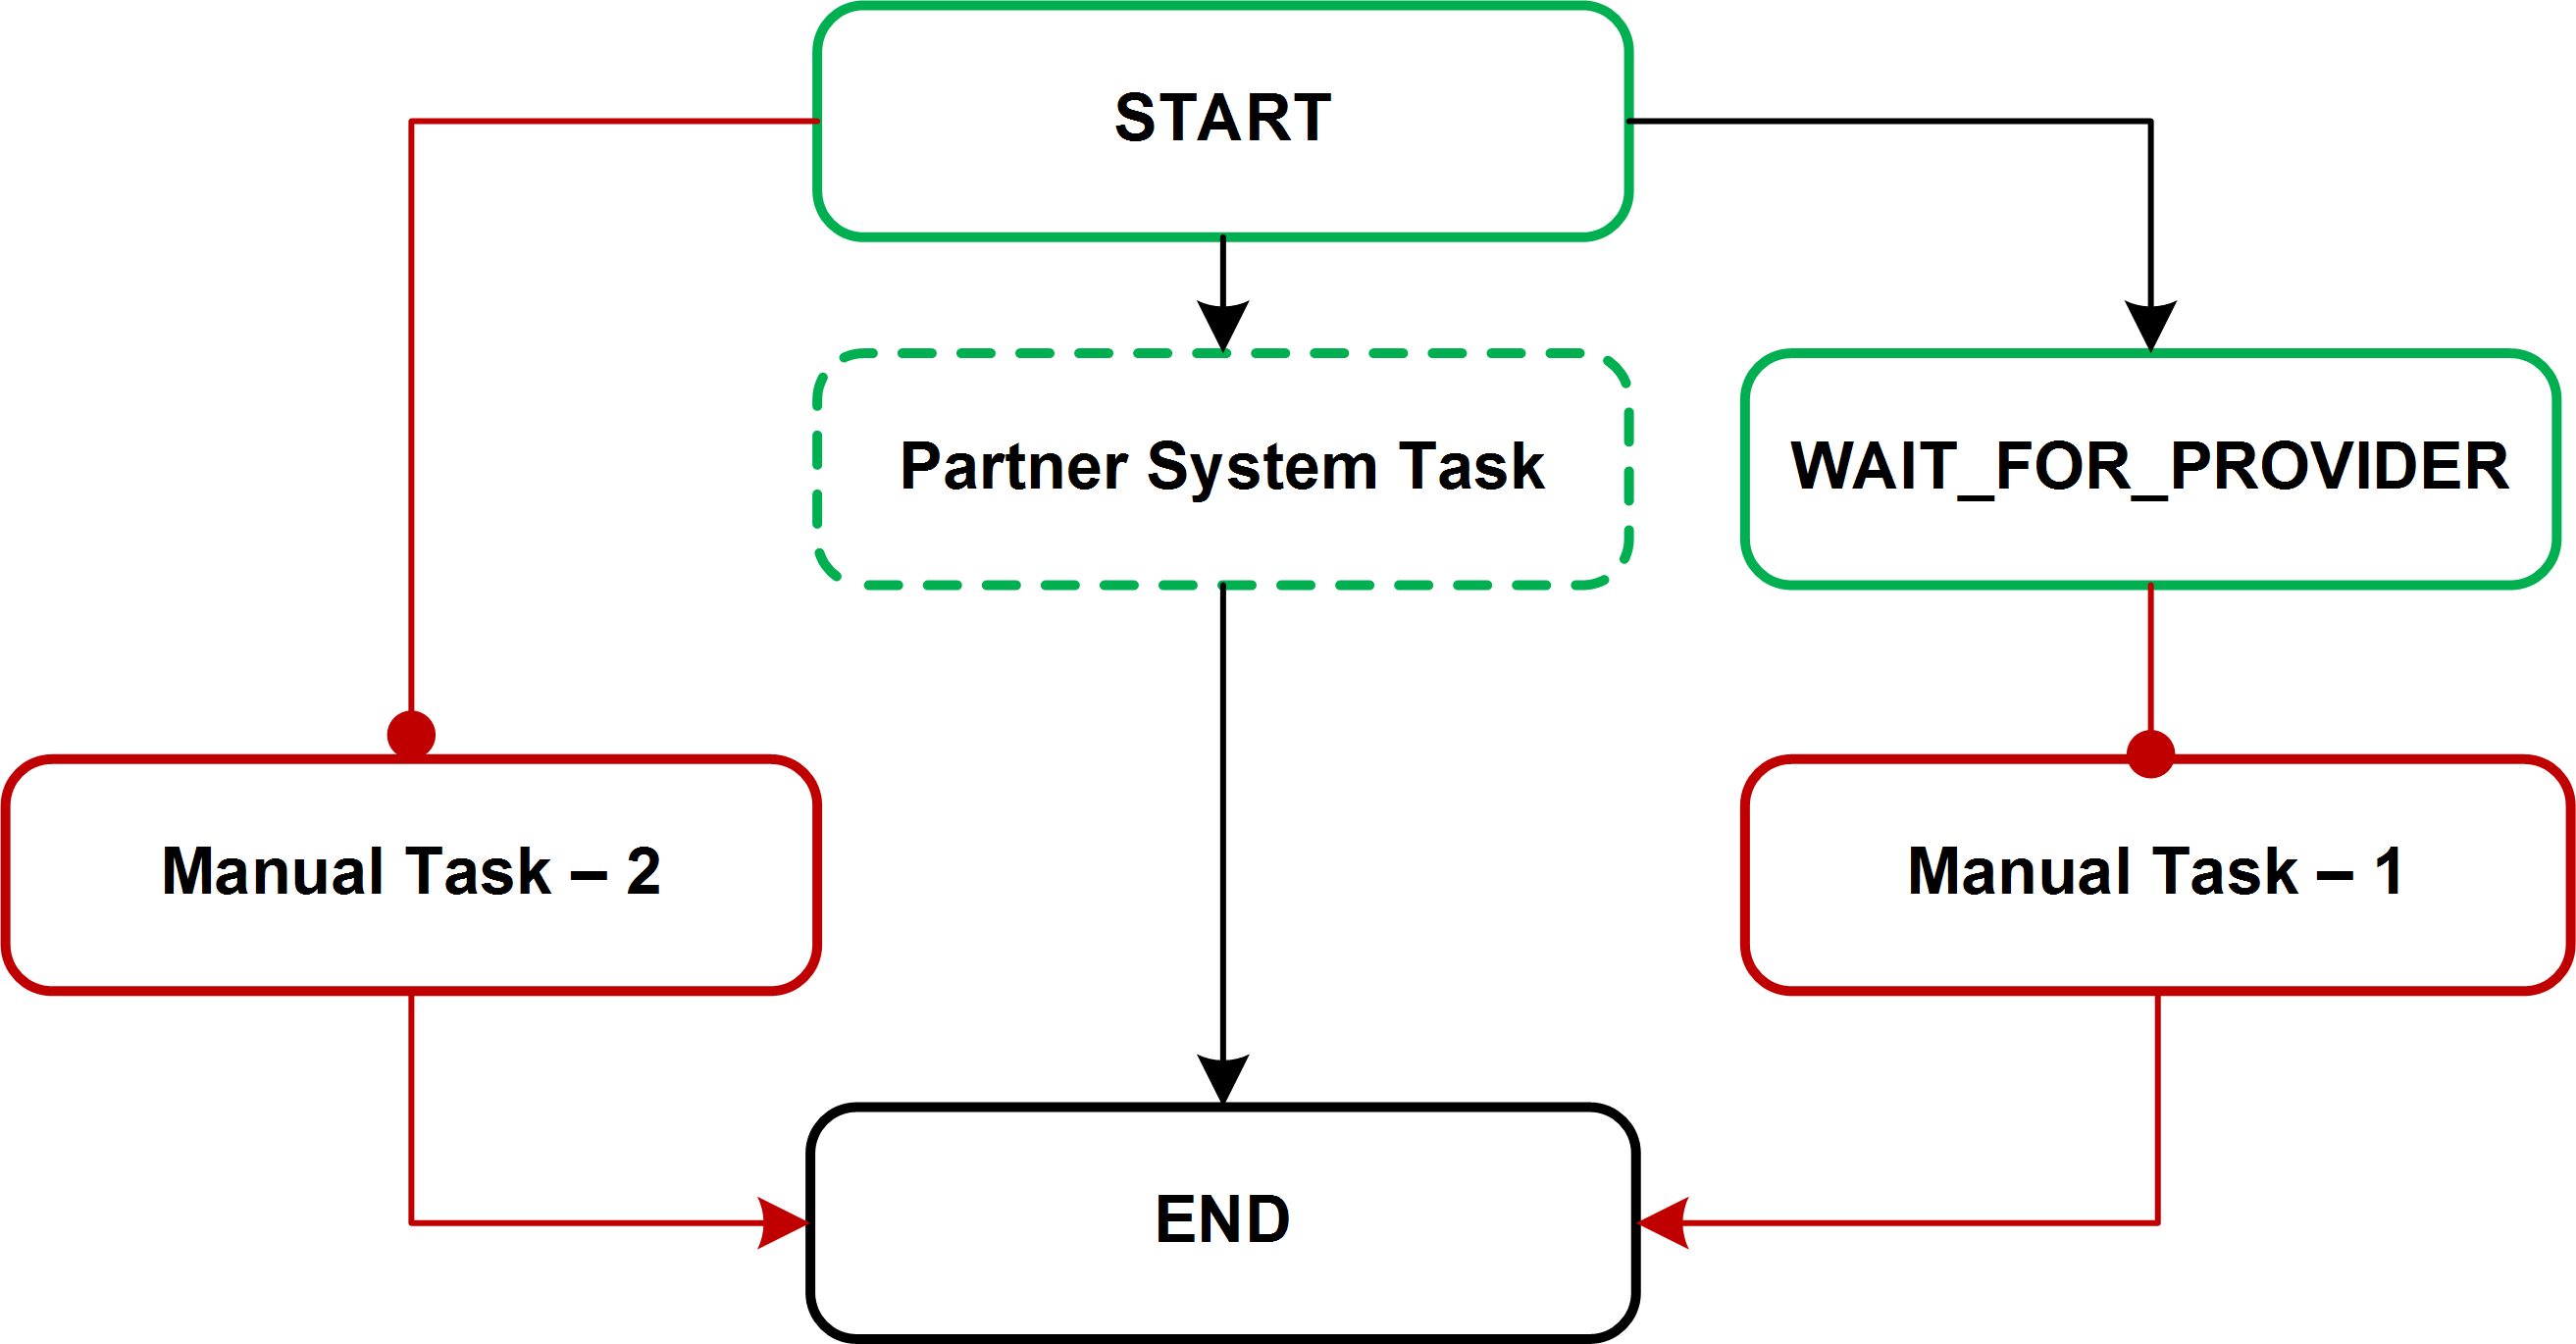 Processes image showing a simplified process including an ovi partner system task and two manual tasks nvjuhfo Choice Image